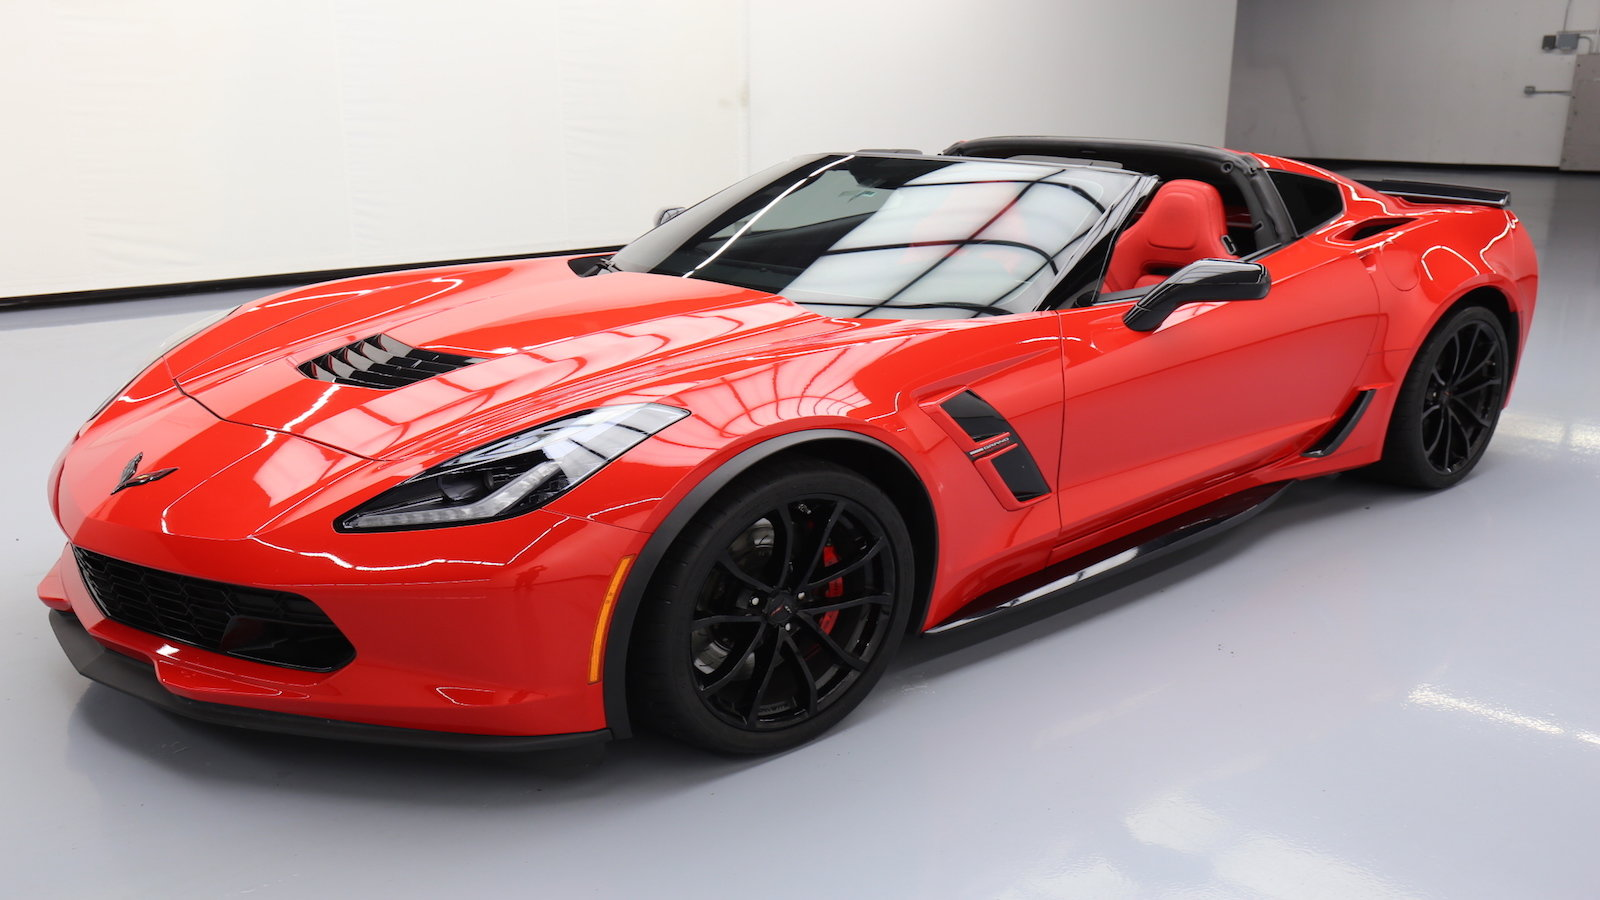 A Guide to Finding a Corvette at Auctions